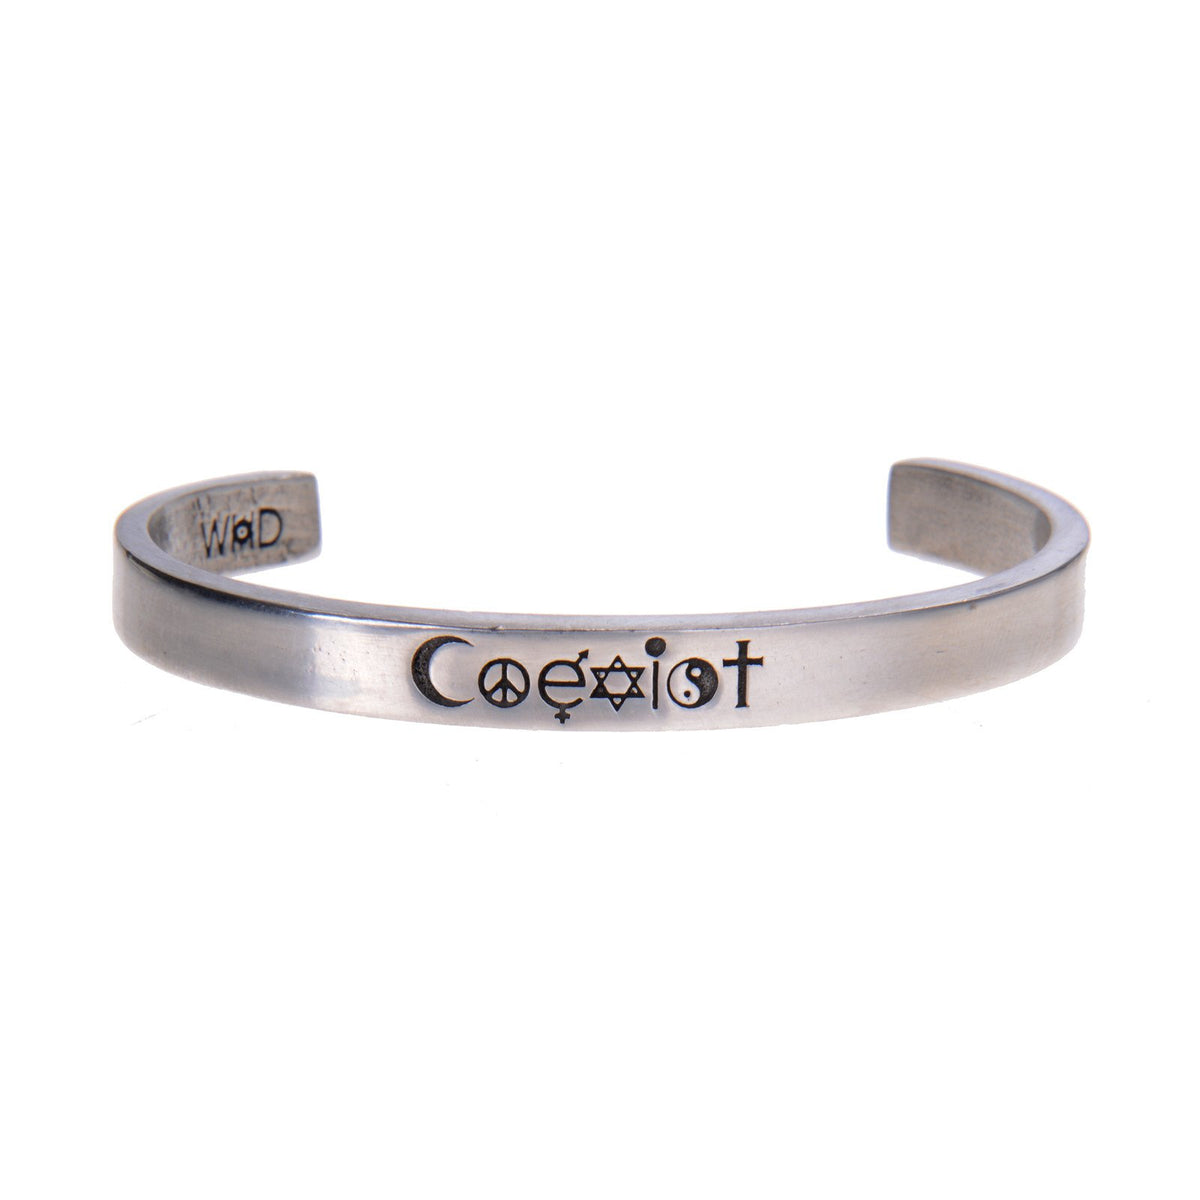 Coexist Quotable Cuff Bracelet